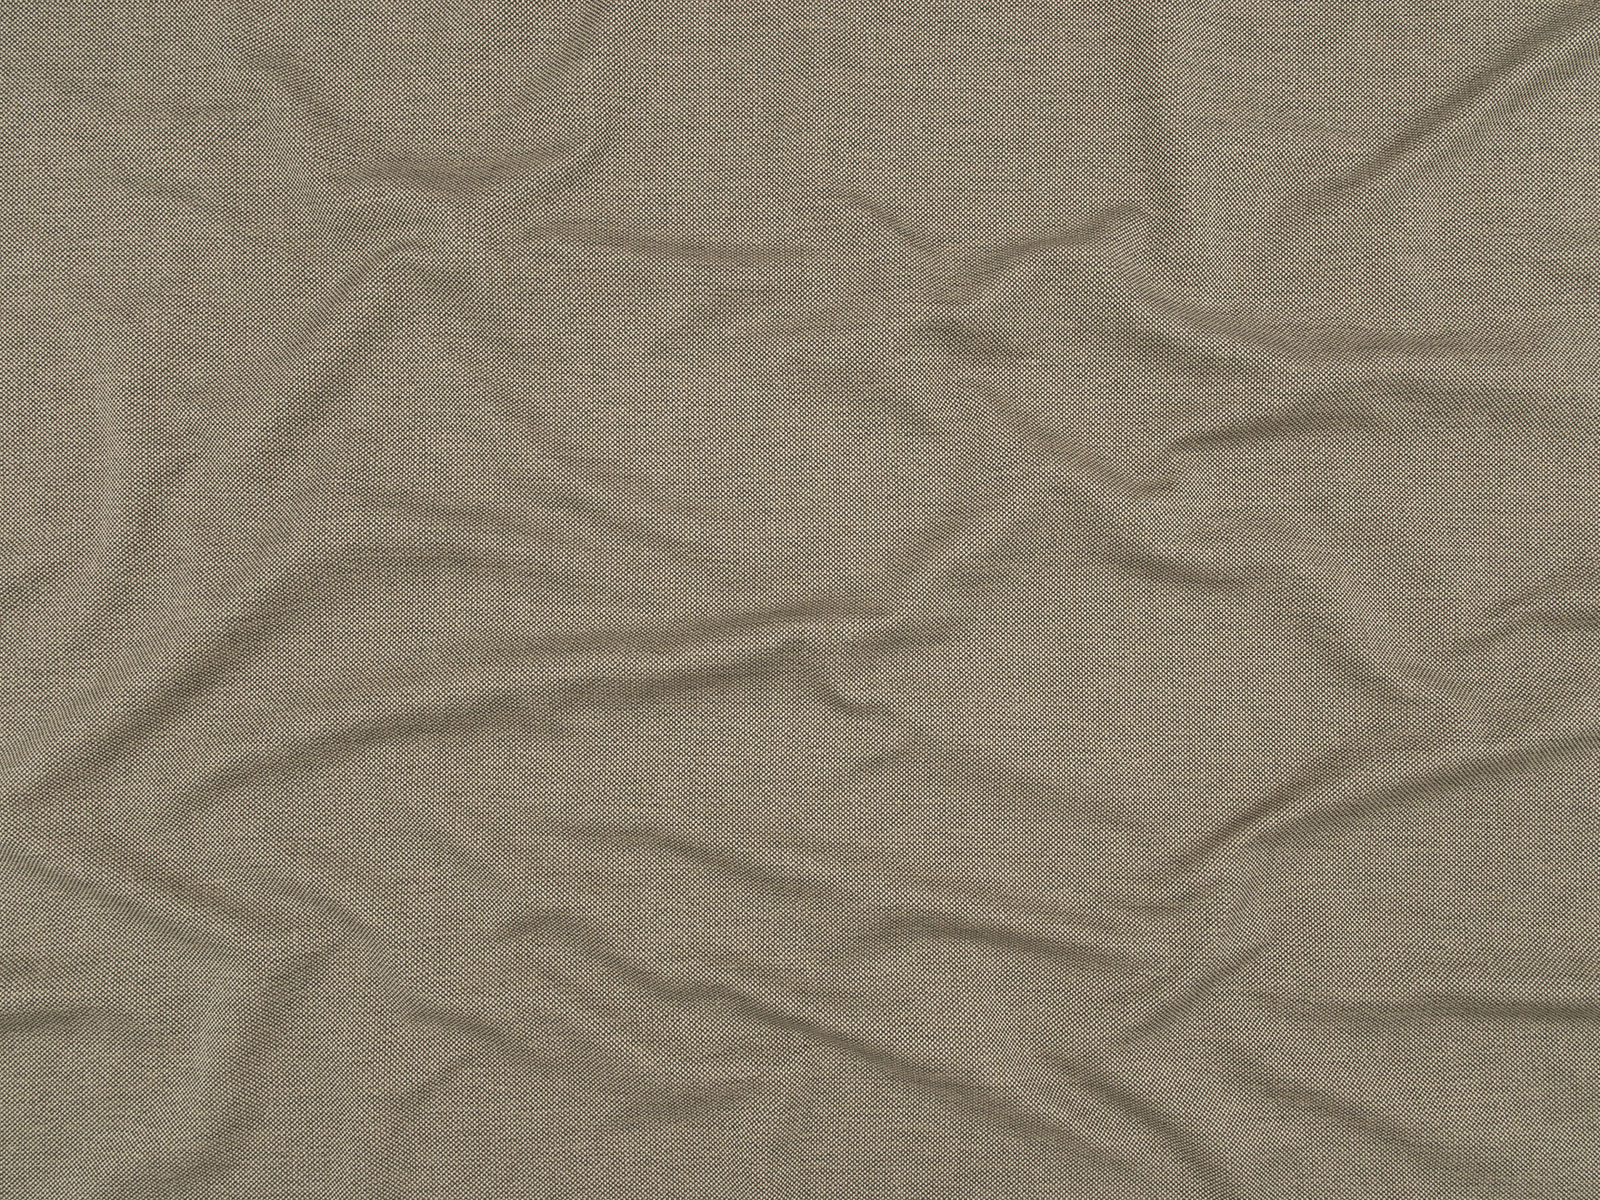 5.875 yds Zimmer and Rohde Upholstery Fabric Loft 1010536884 CV